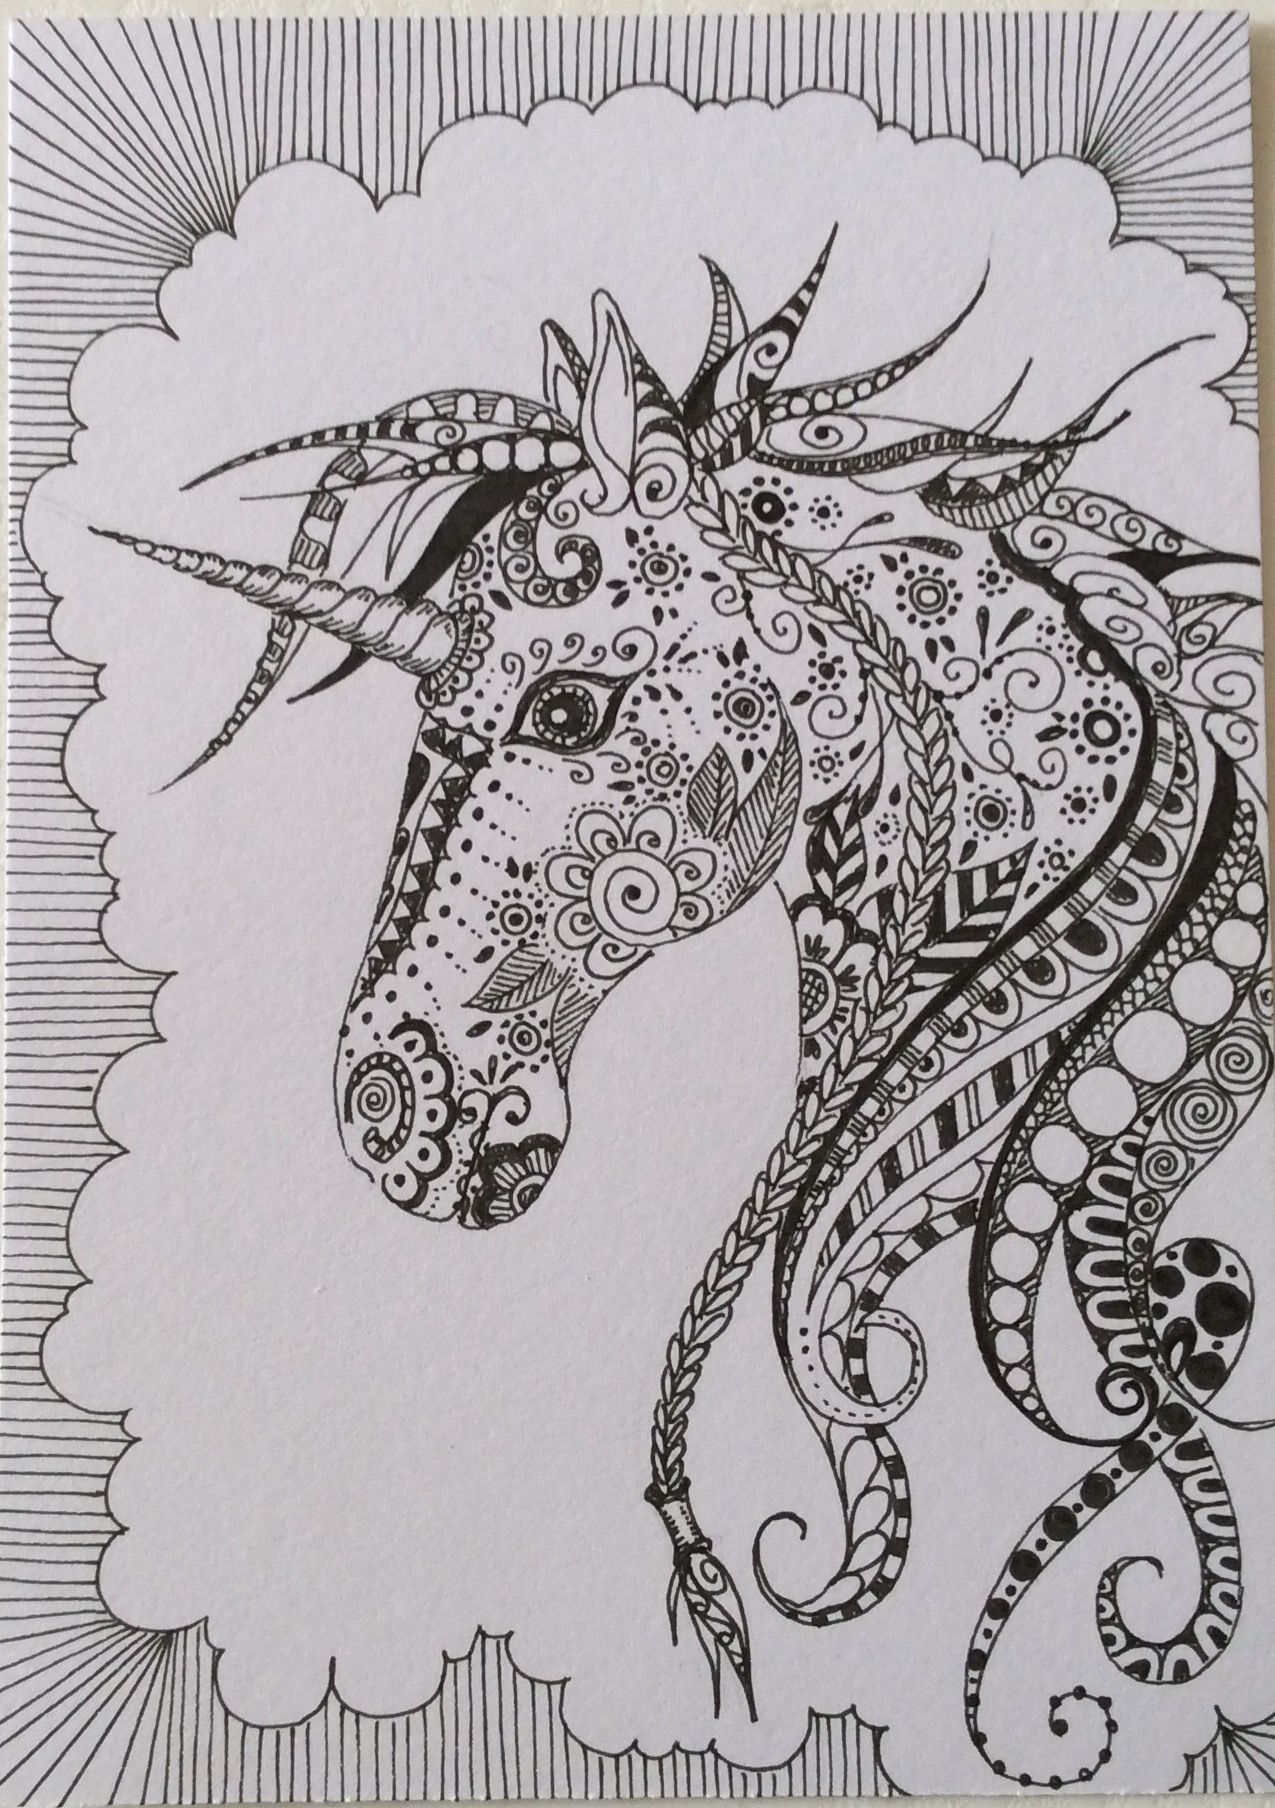 unicorn coloring pages 4 adults coloring book art zentangle y unicorn. Black Bedroom Furniture Sets. Home Design Ideas